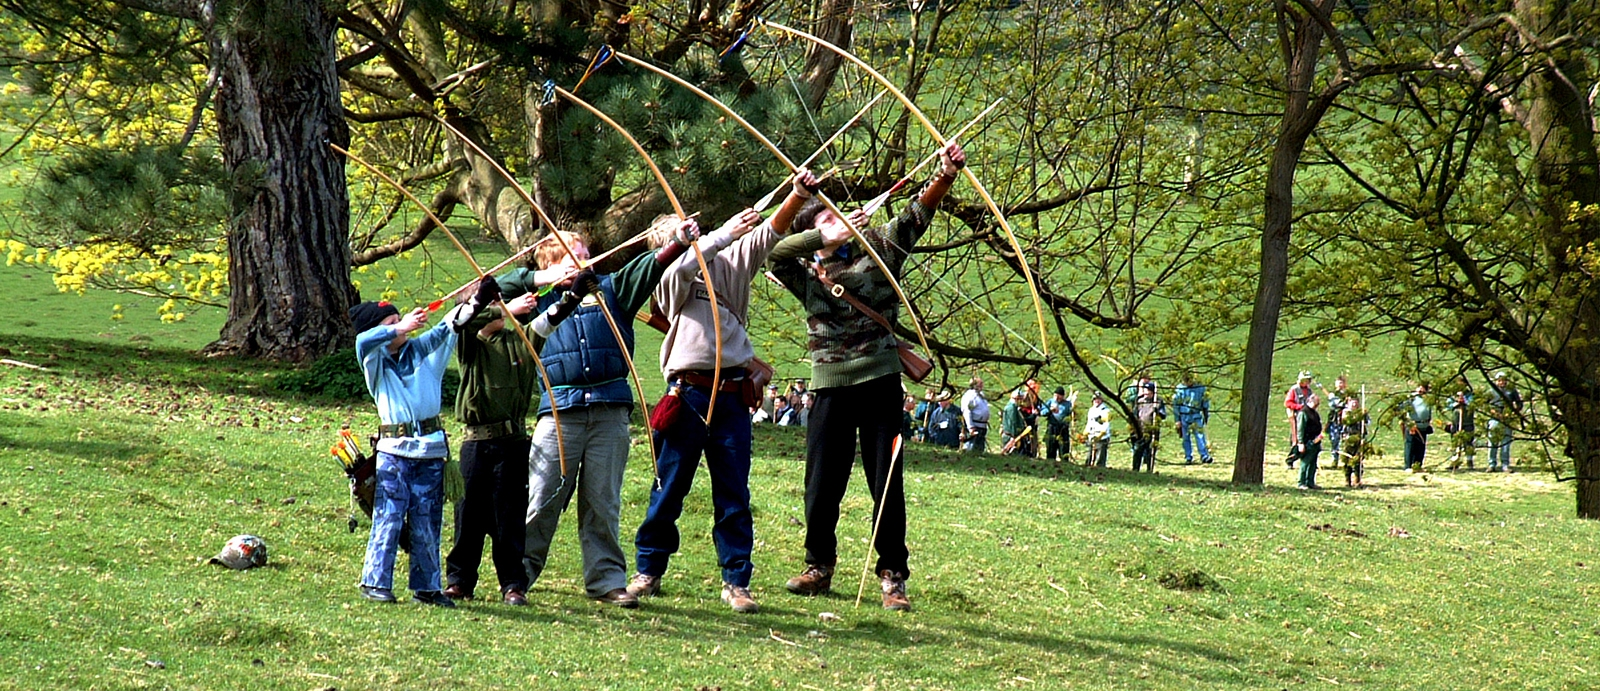 Longbow Archers and Traditional Archery